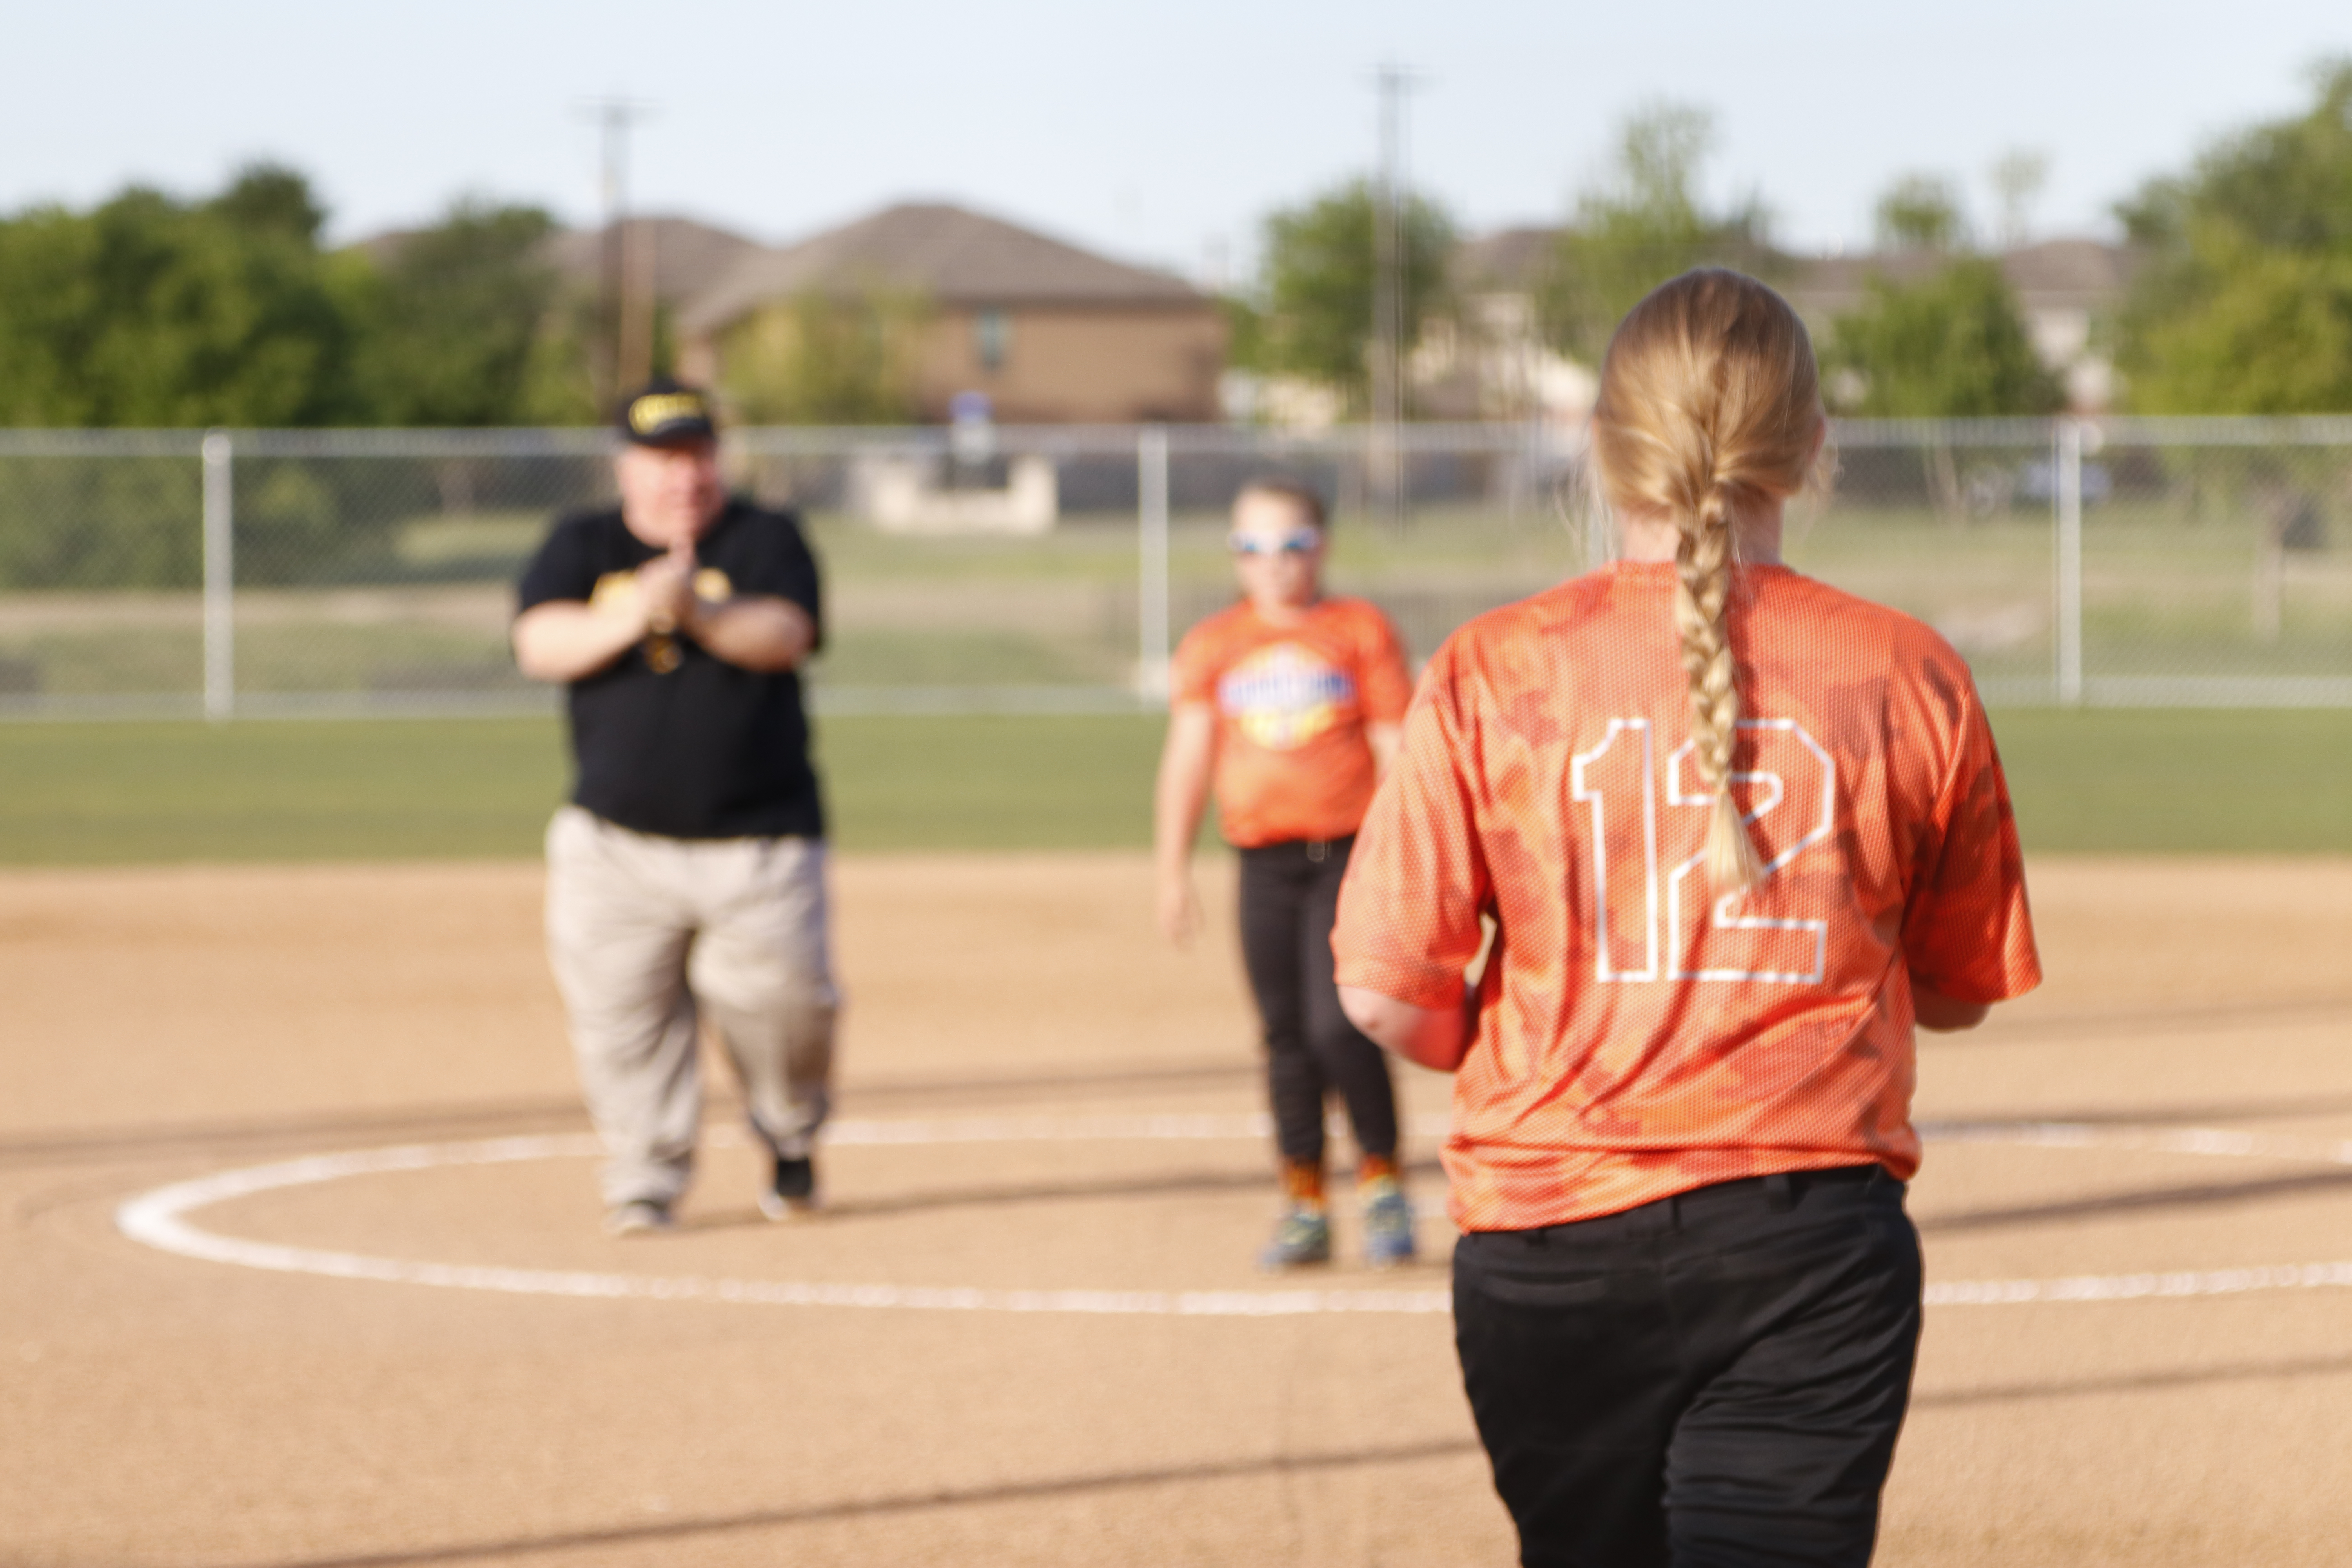 Two female softball players with the Mayor after throwing out the first pitch at VFW Park in Georgetown, TX